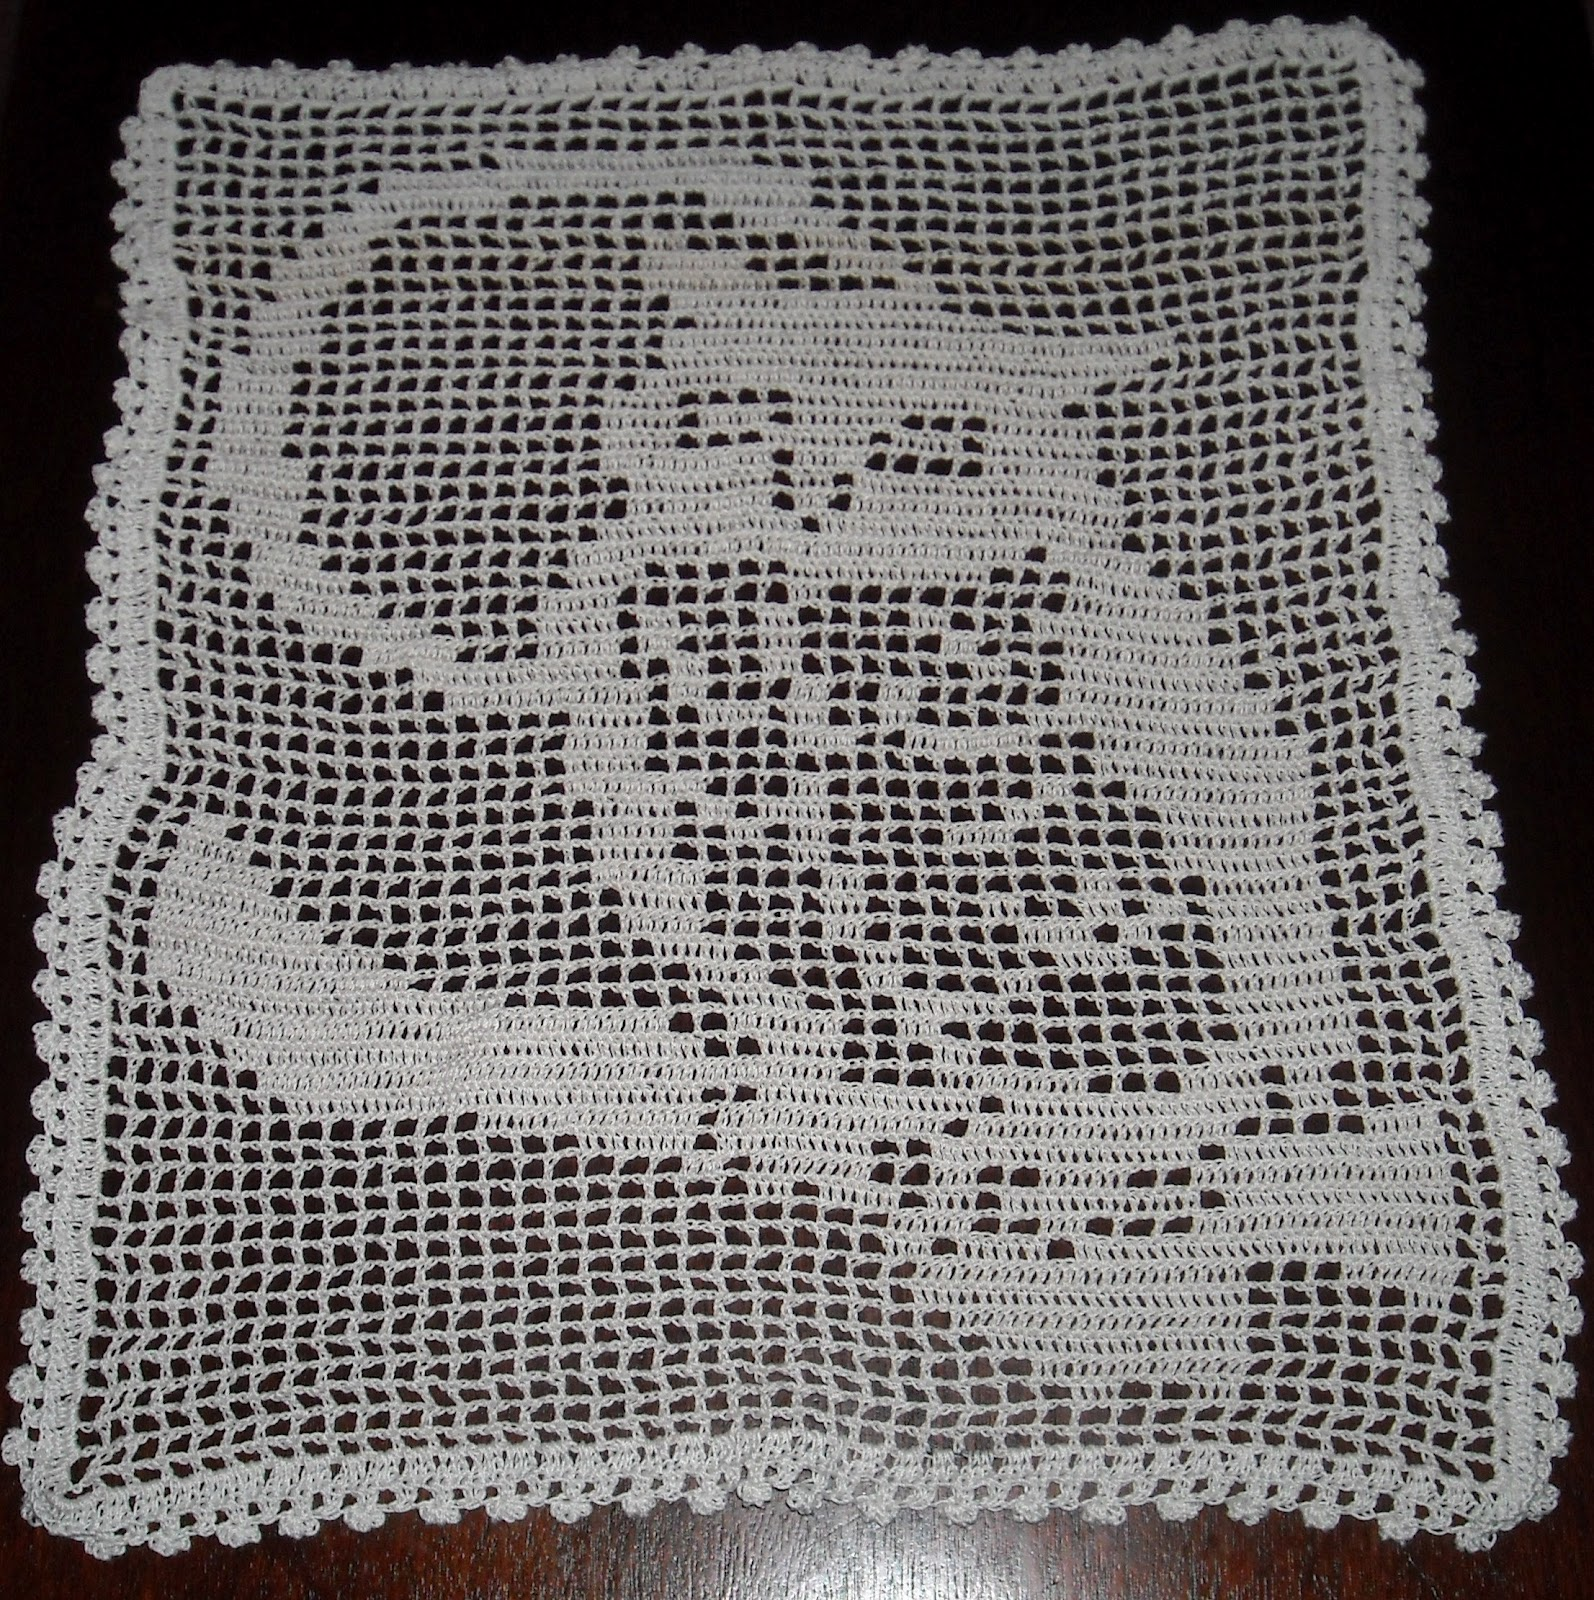 Crochet Doily Patterns With Diagrams Free Wiring Diagram For You